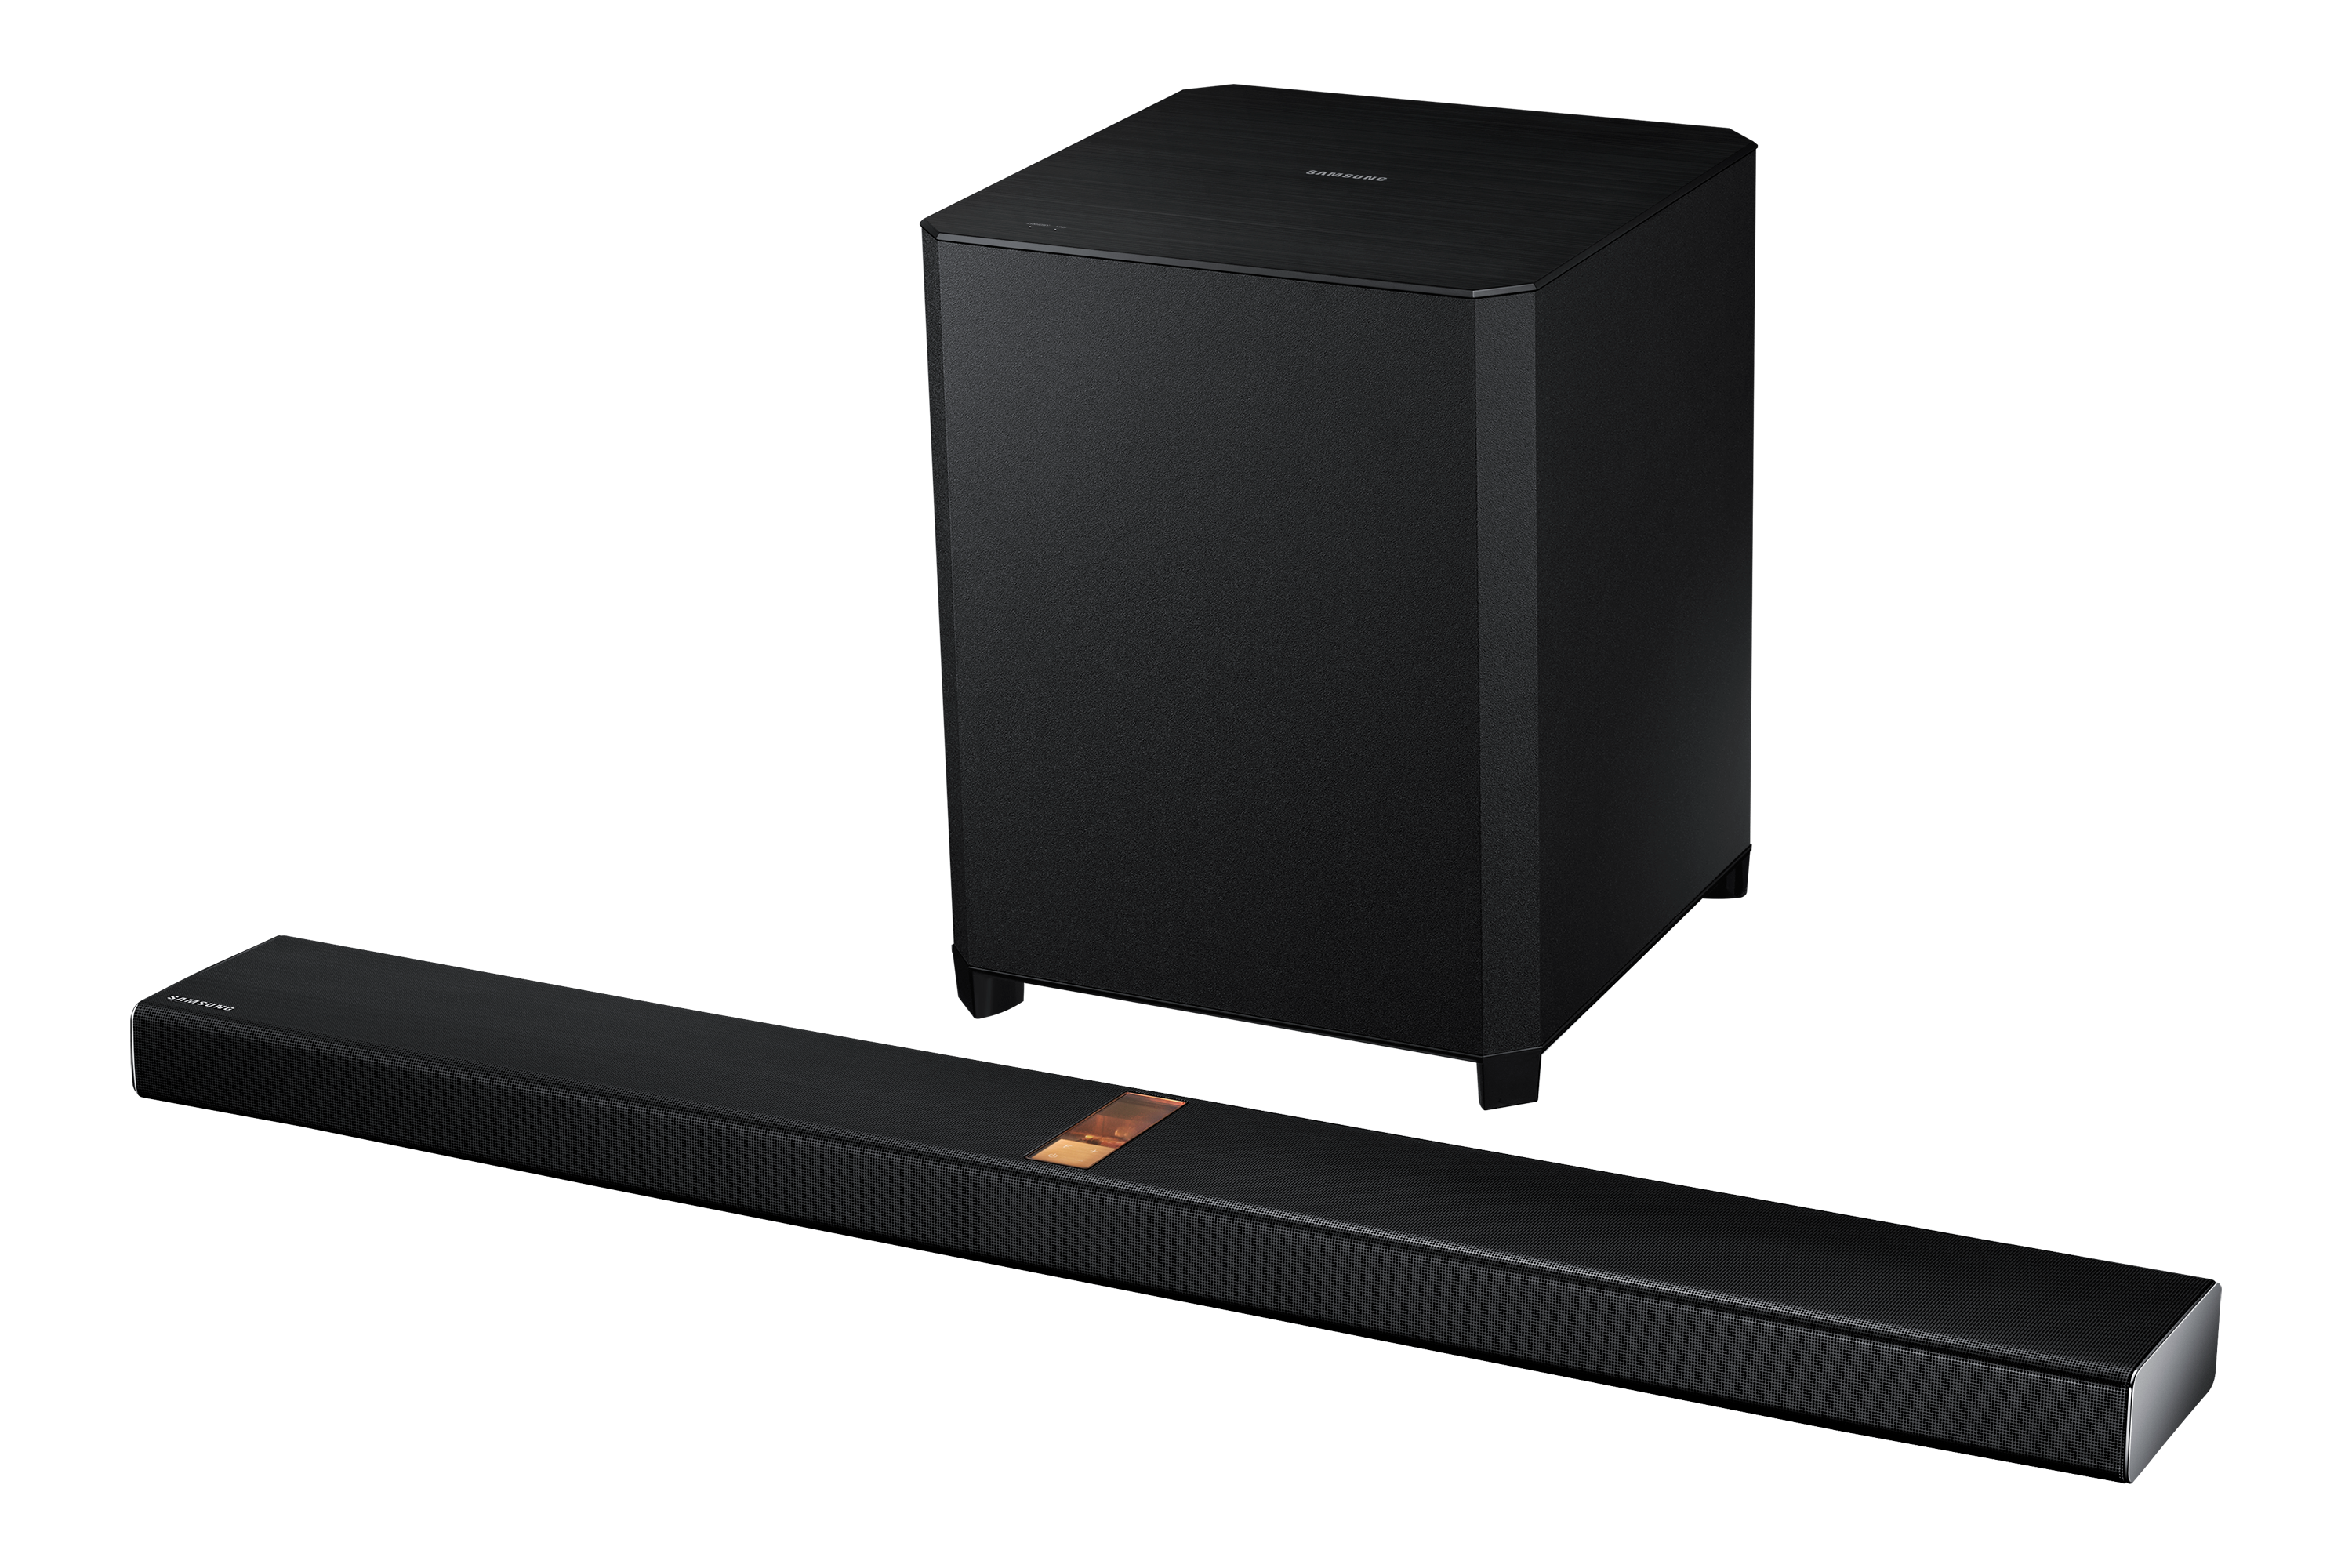 HW-H750 Wireless Multiroom Soundbar with built-in Valve Amplifier